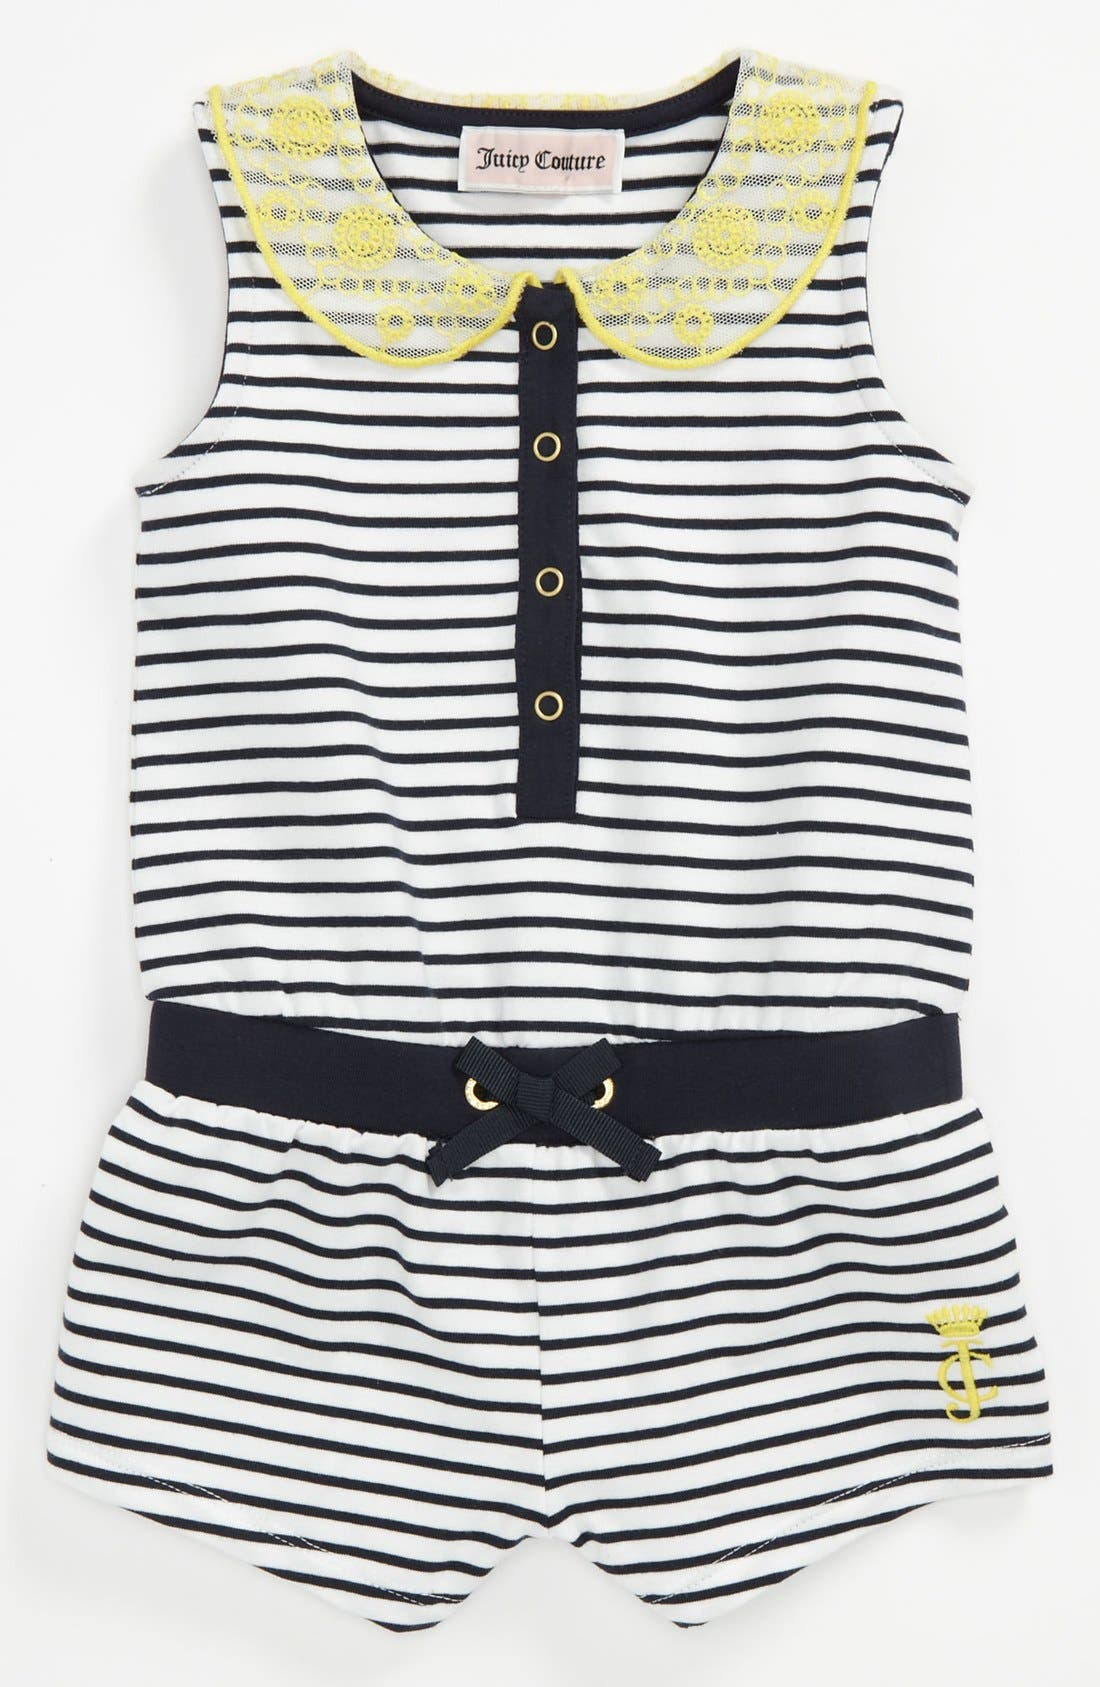 Alternate Image 1 Selected - Juicy Couture Stripe Coveralls (Baby)